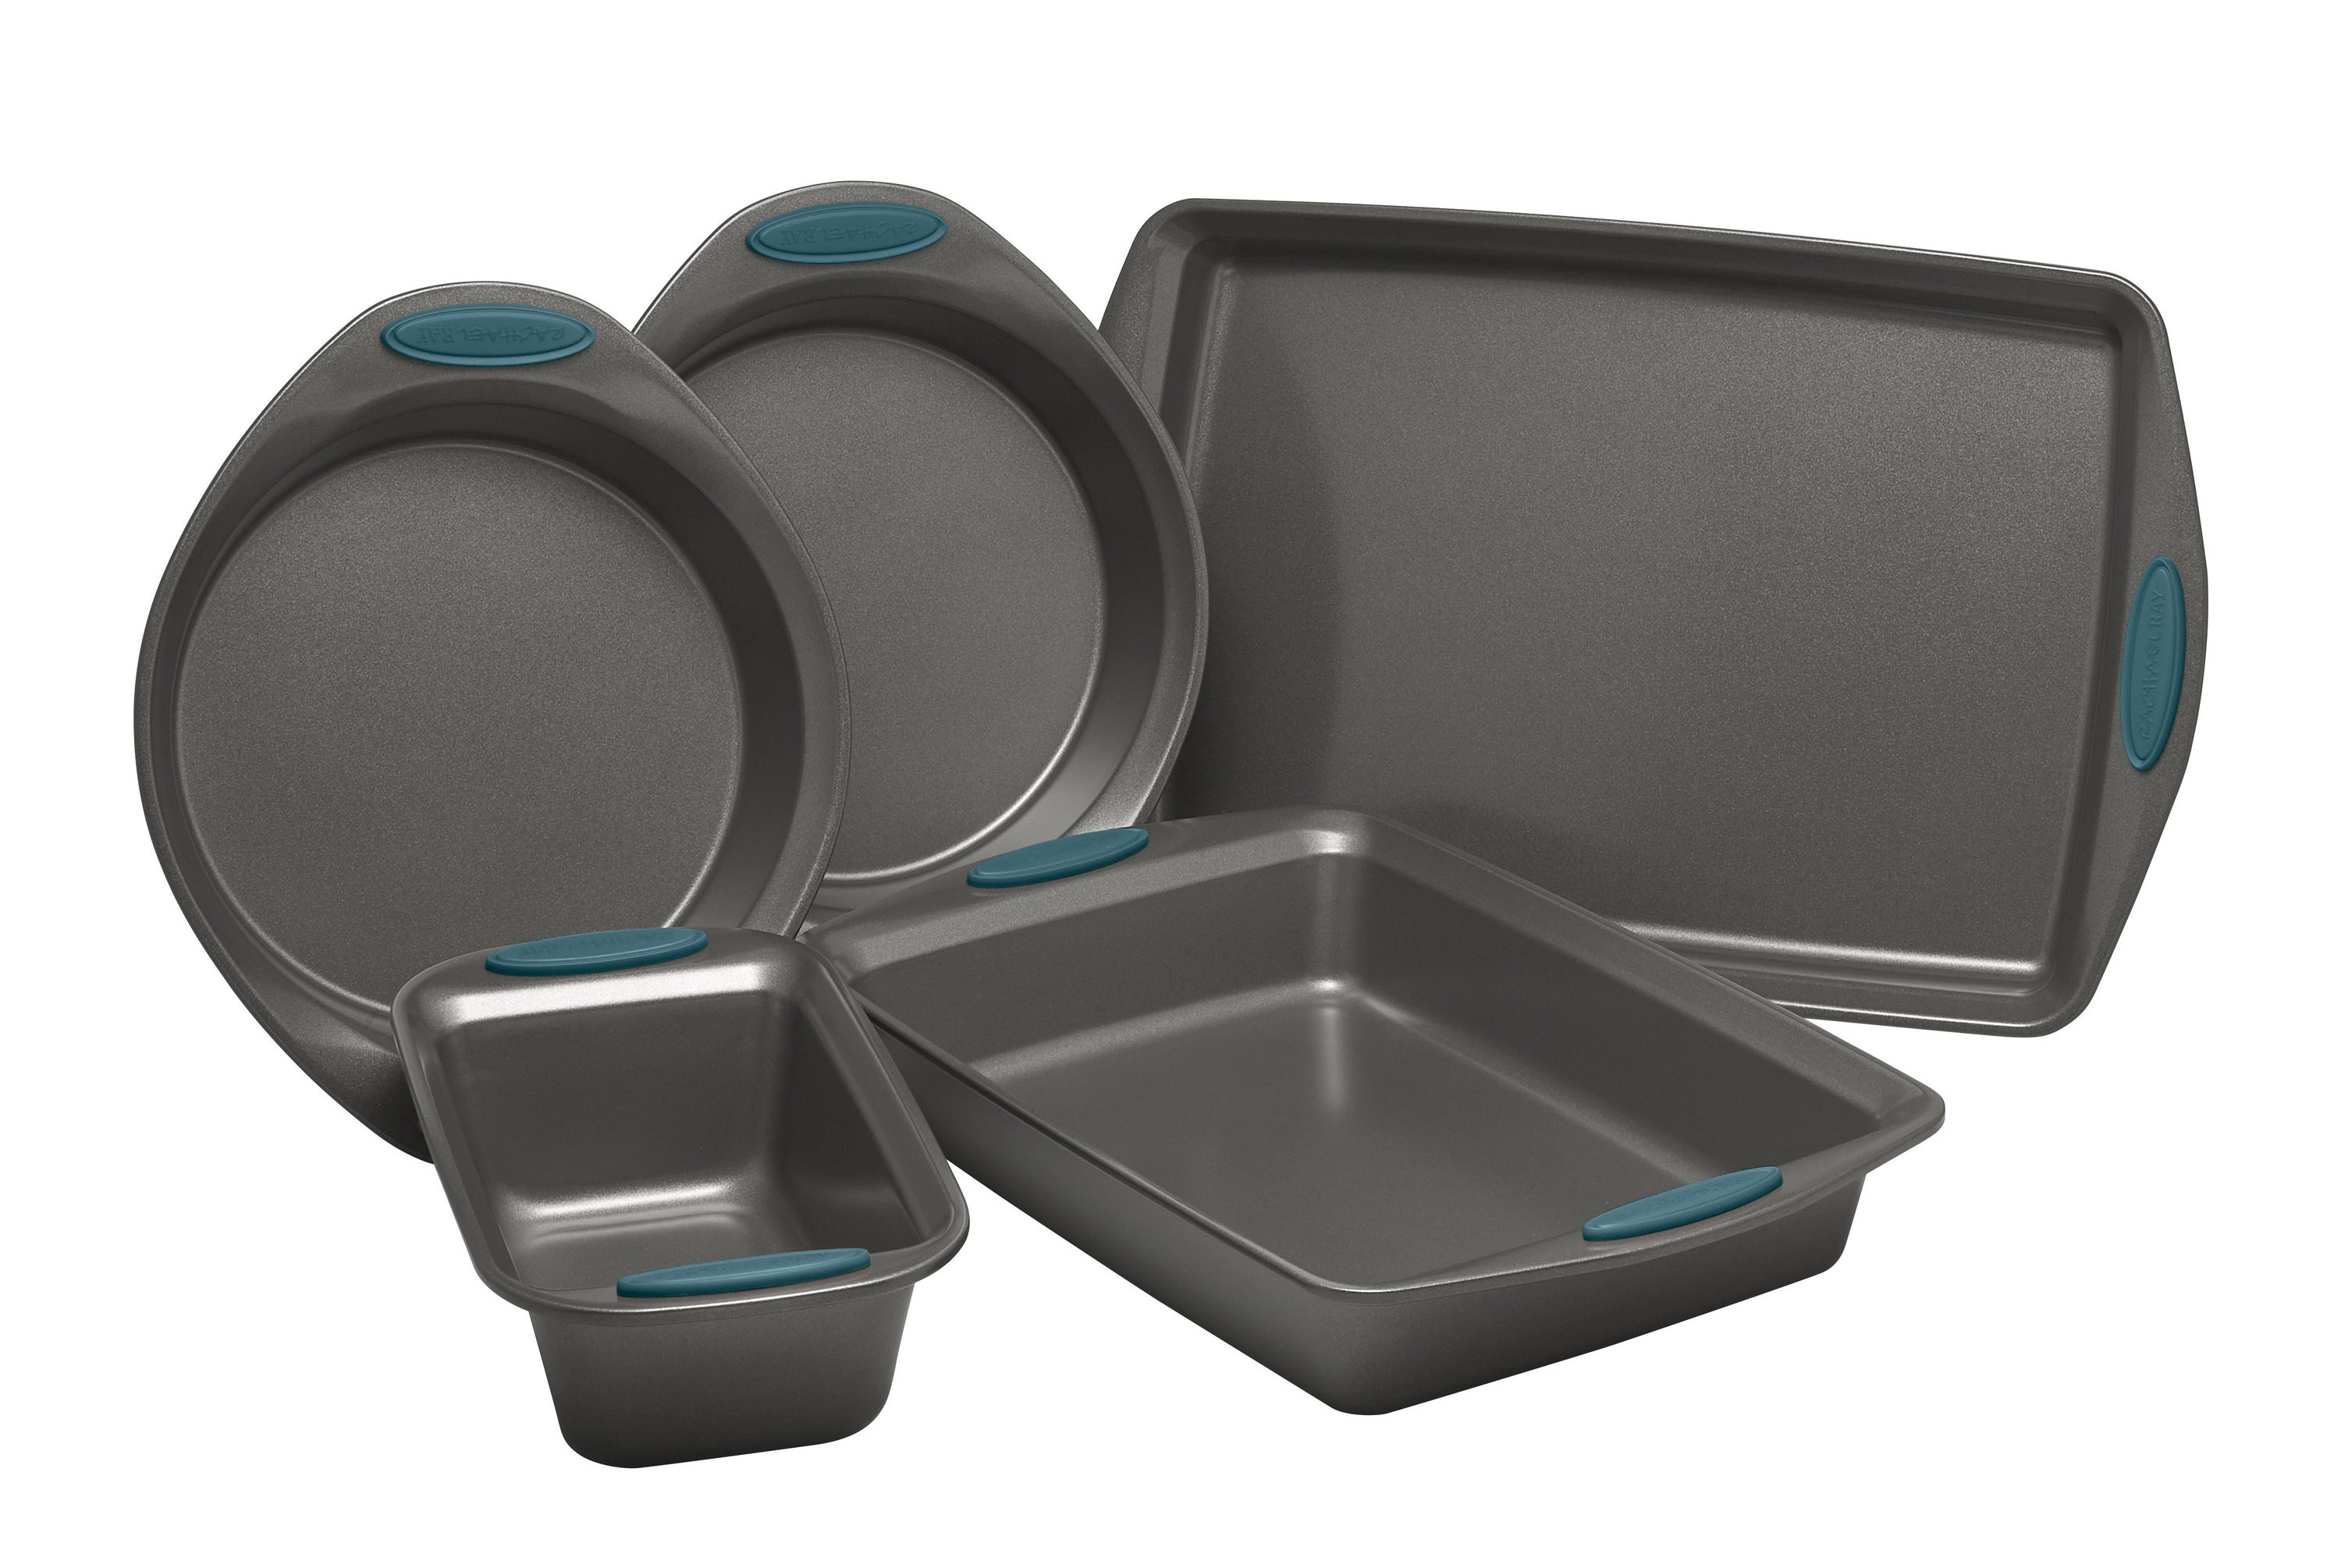 The baking set with blue finishes